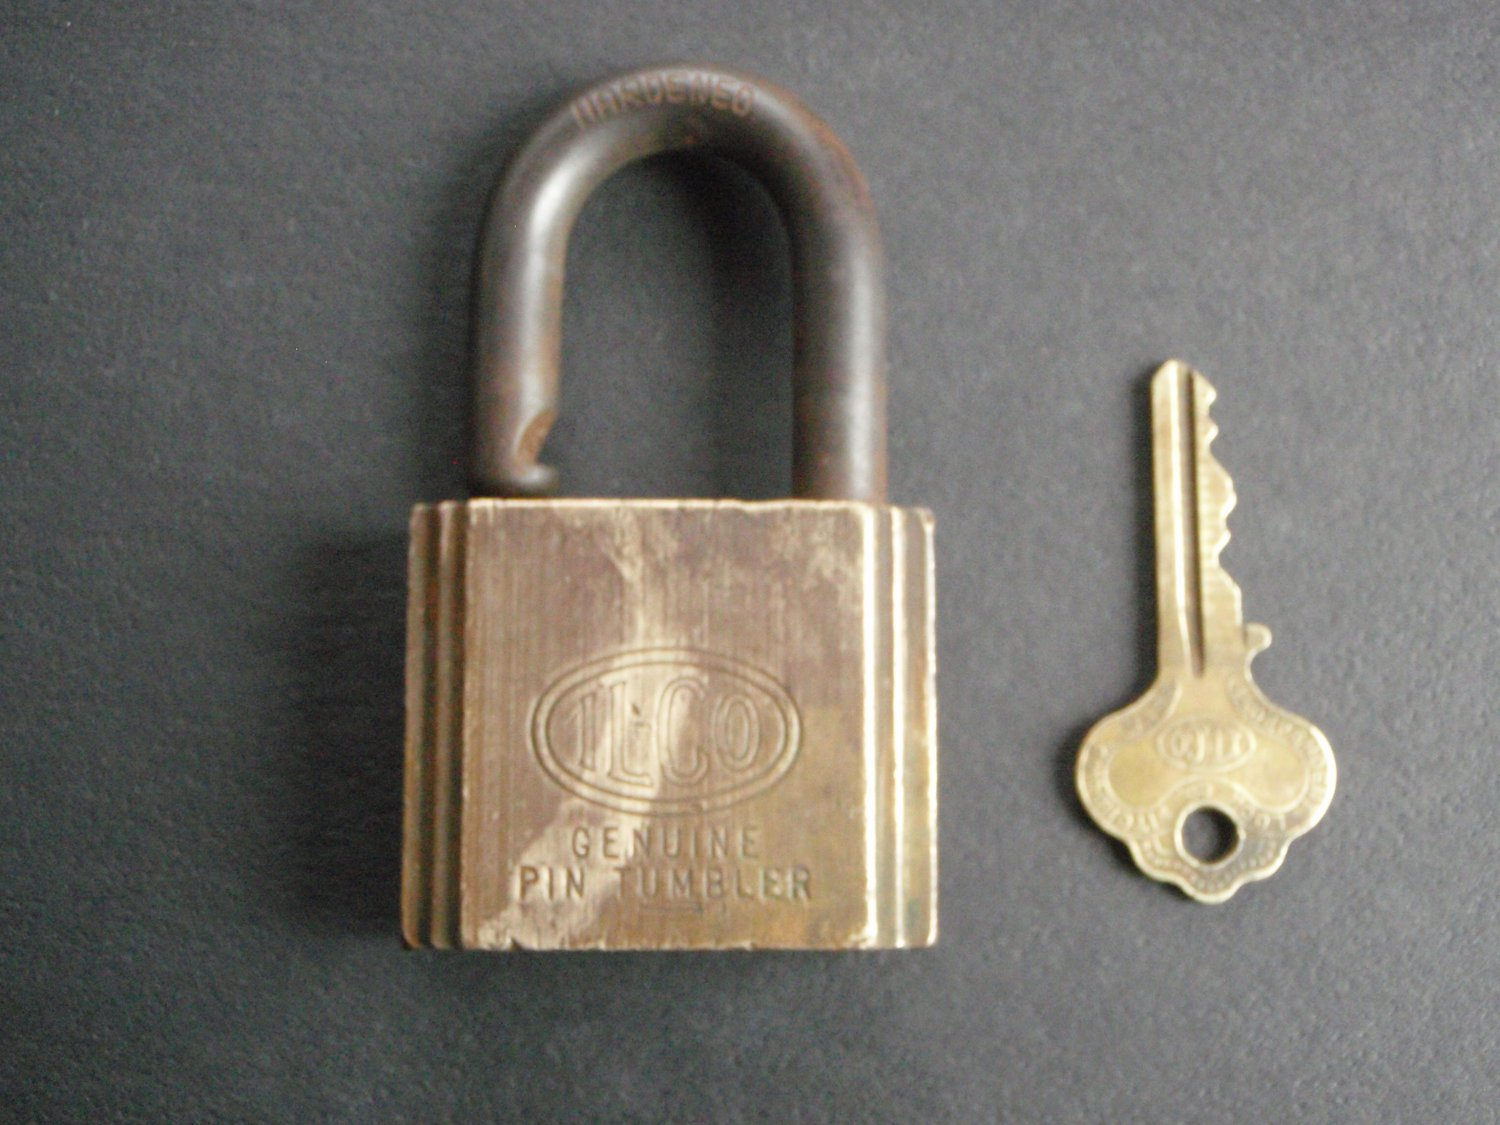 Vintage ILCO Genuine Pin Tumbler Lock & Key KXQ3004